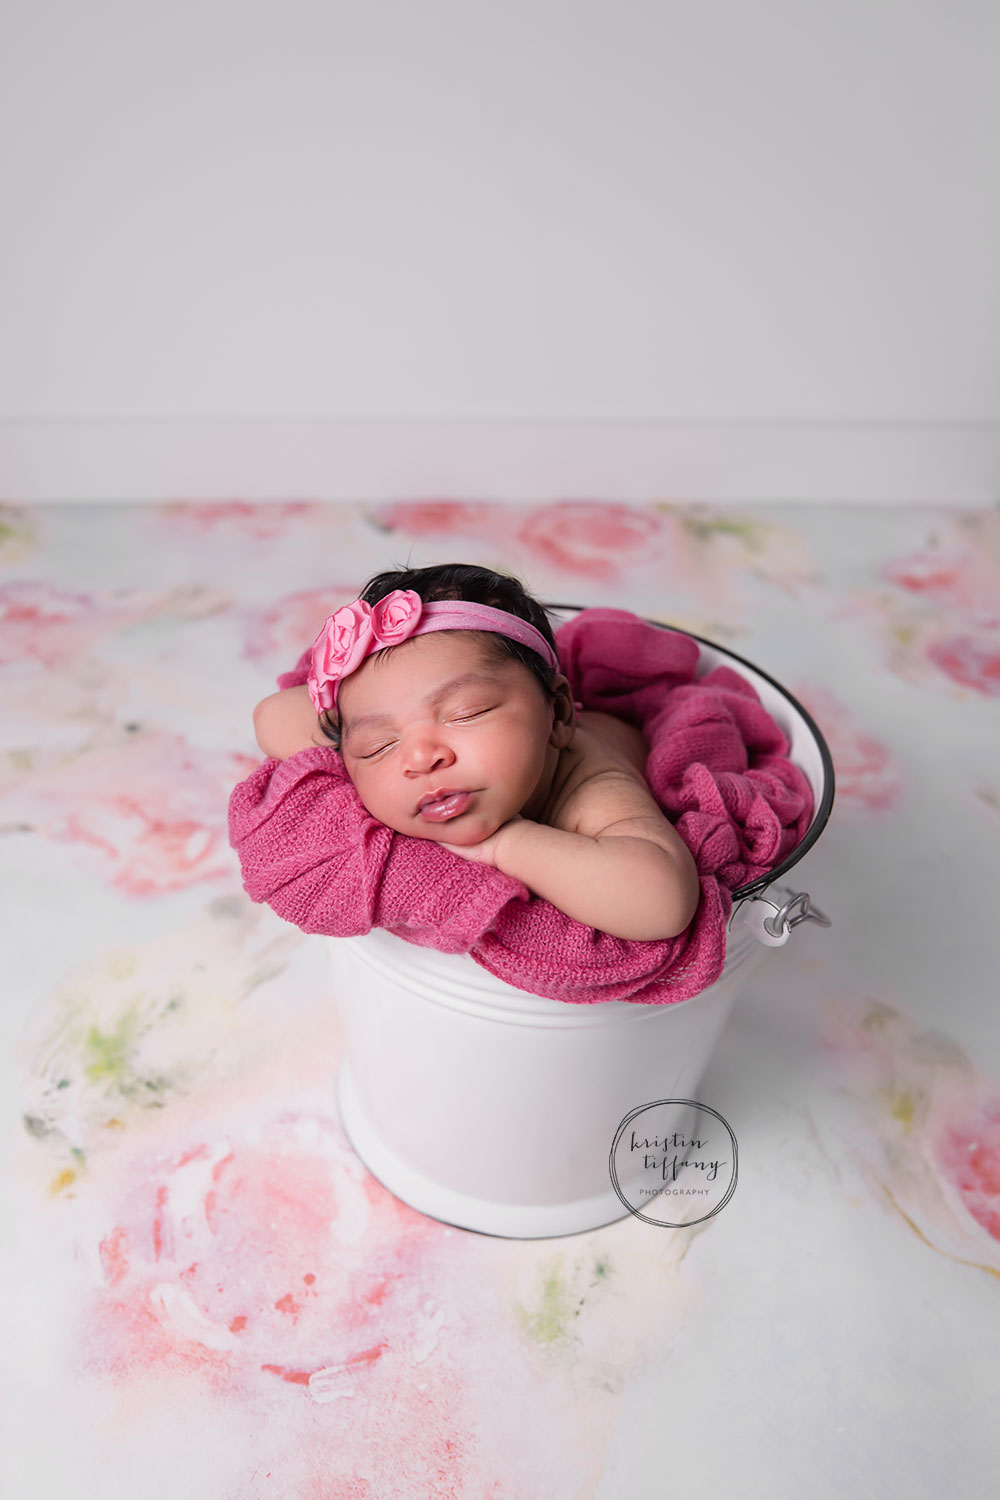 a newborn photo of a baby girl in a bucket with a pink headband